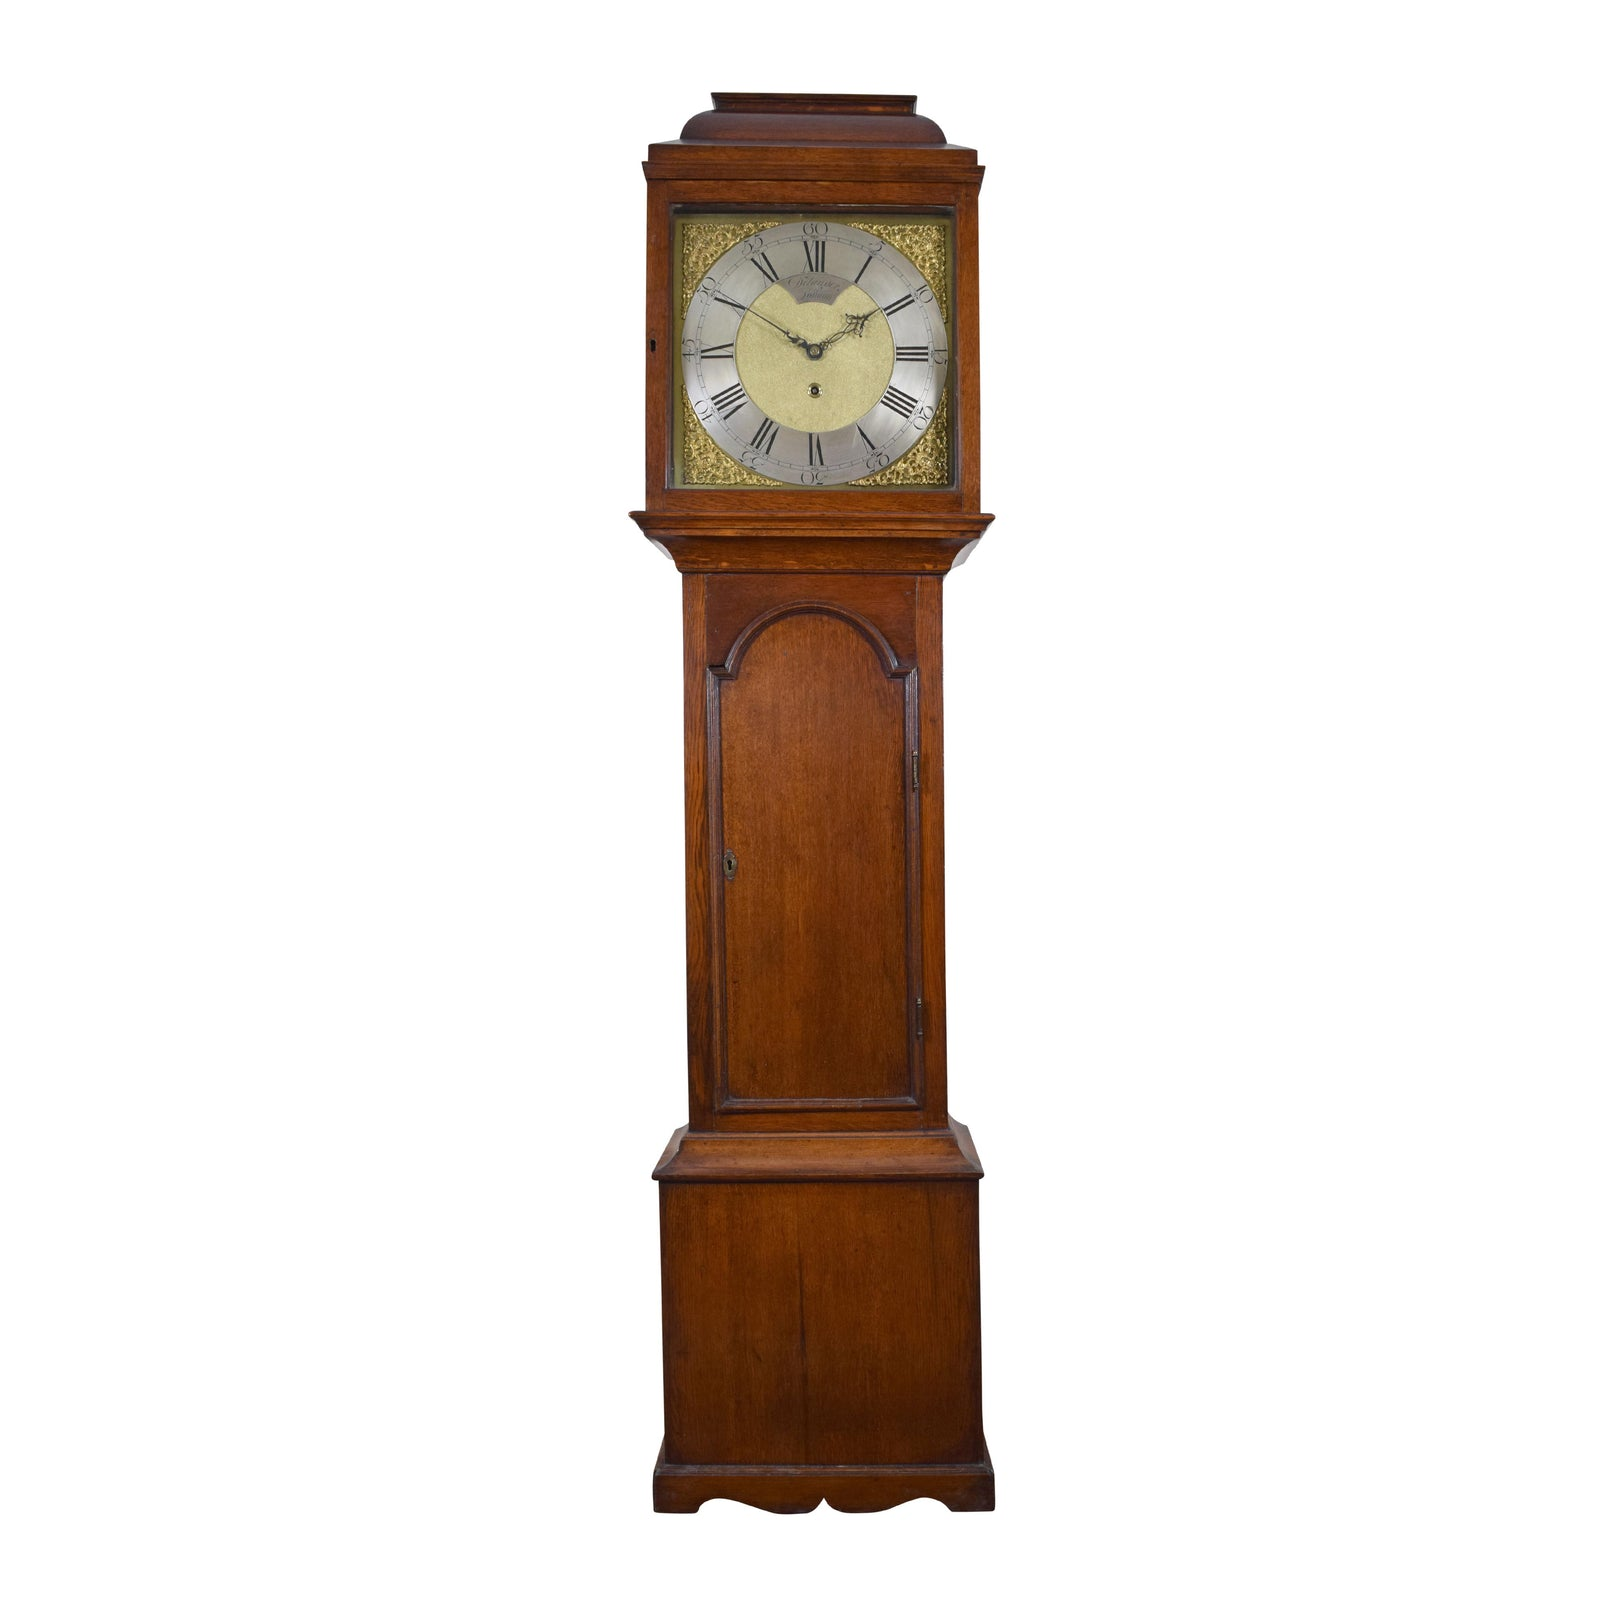 A rare George I, 11 day Longcase Clock by Delander, London